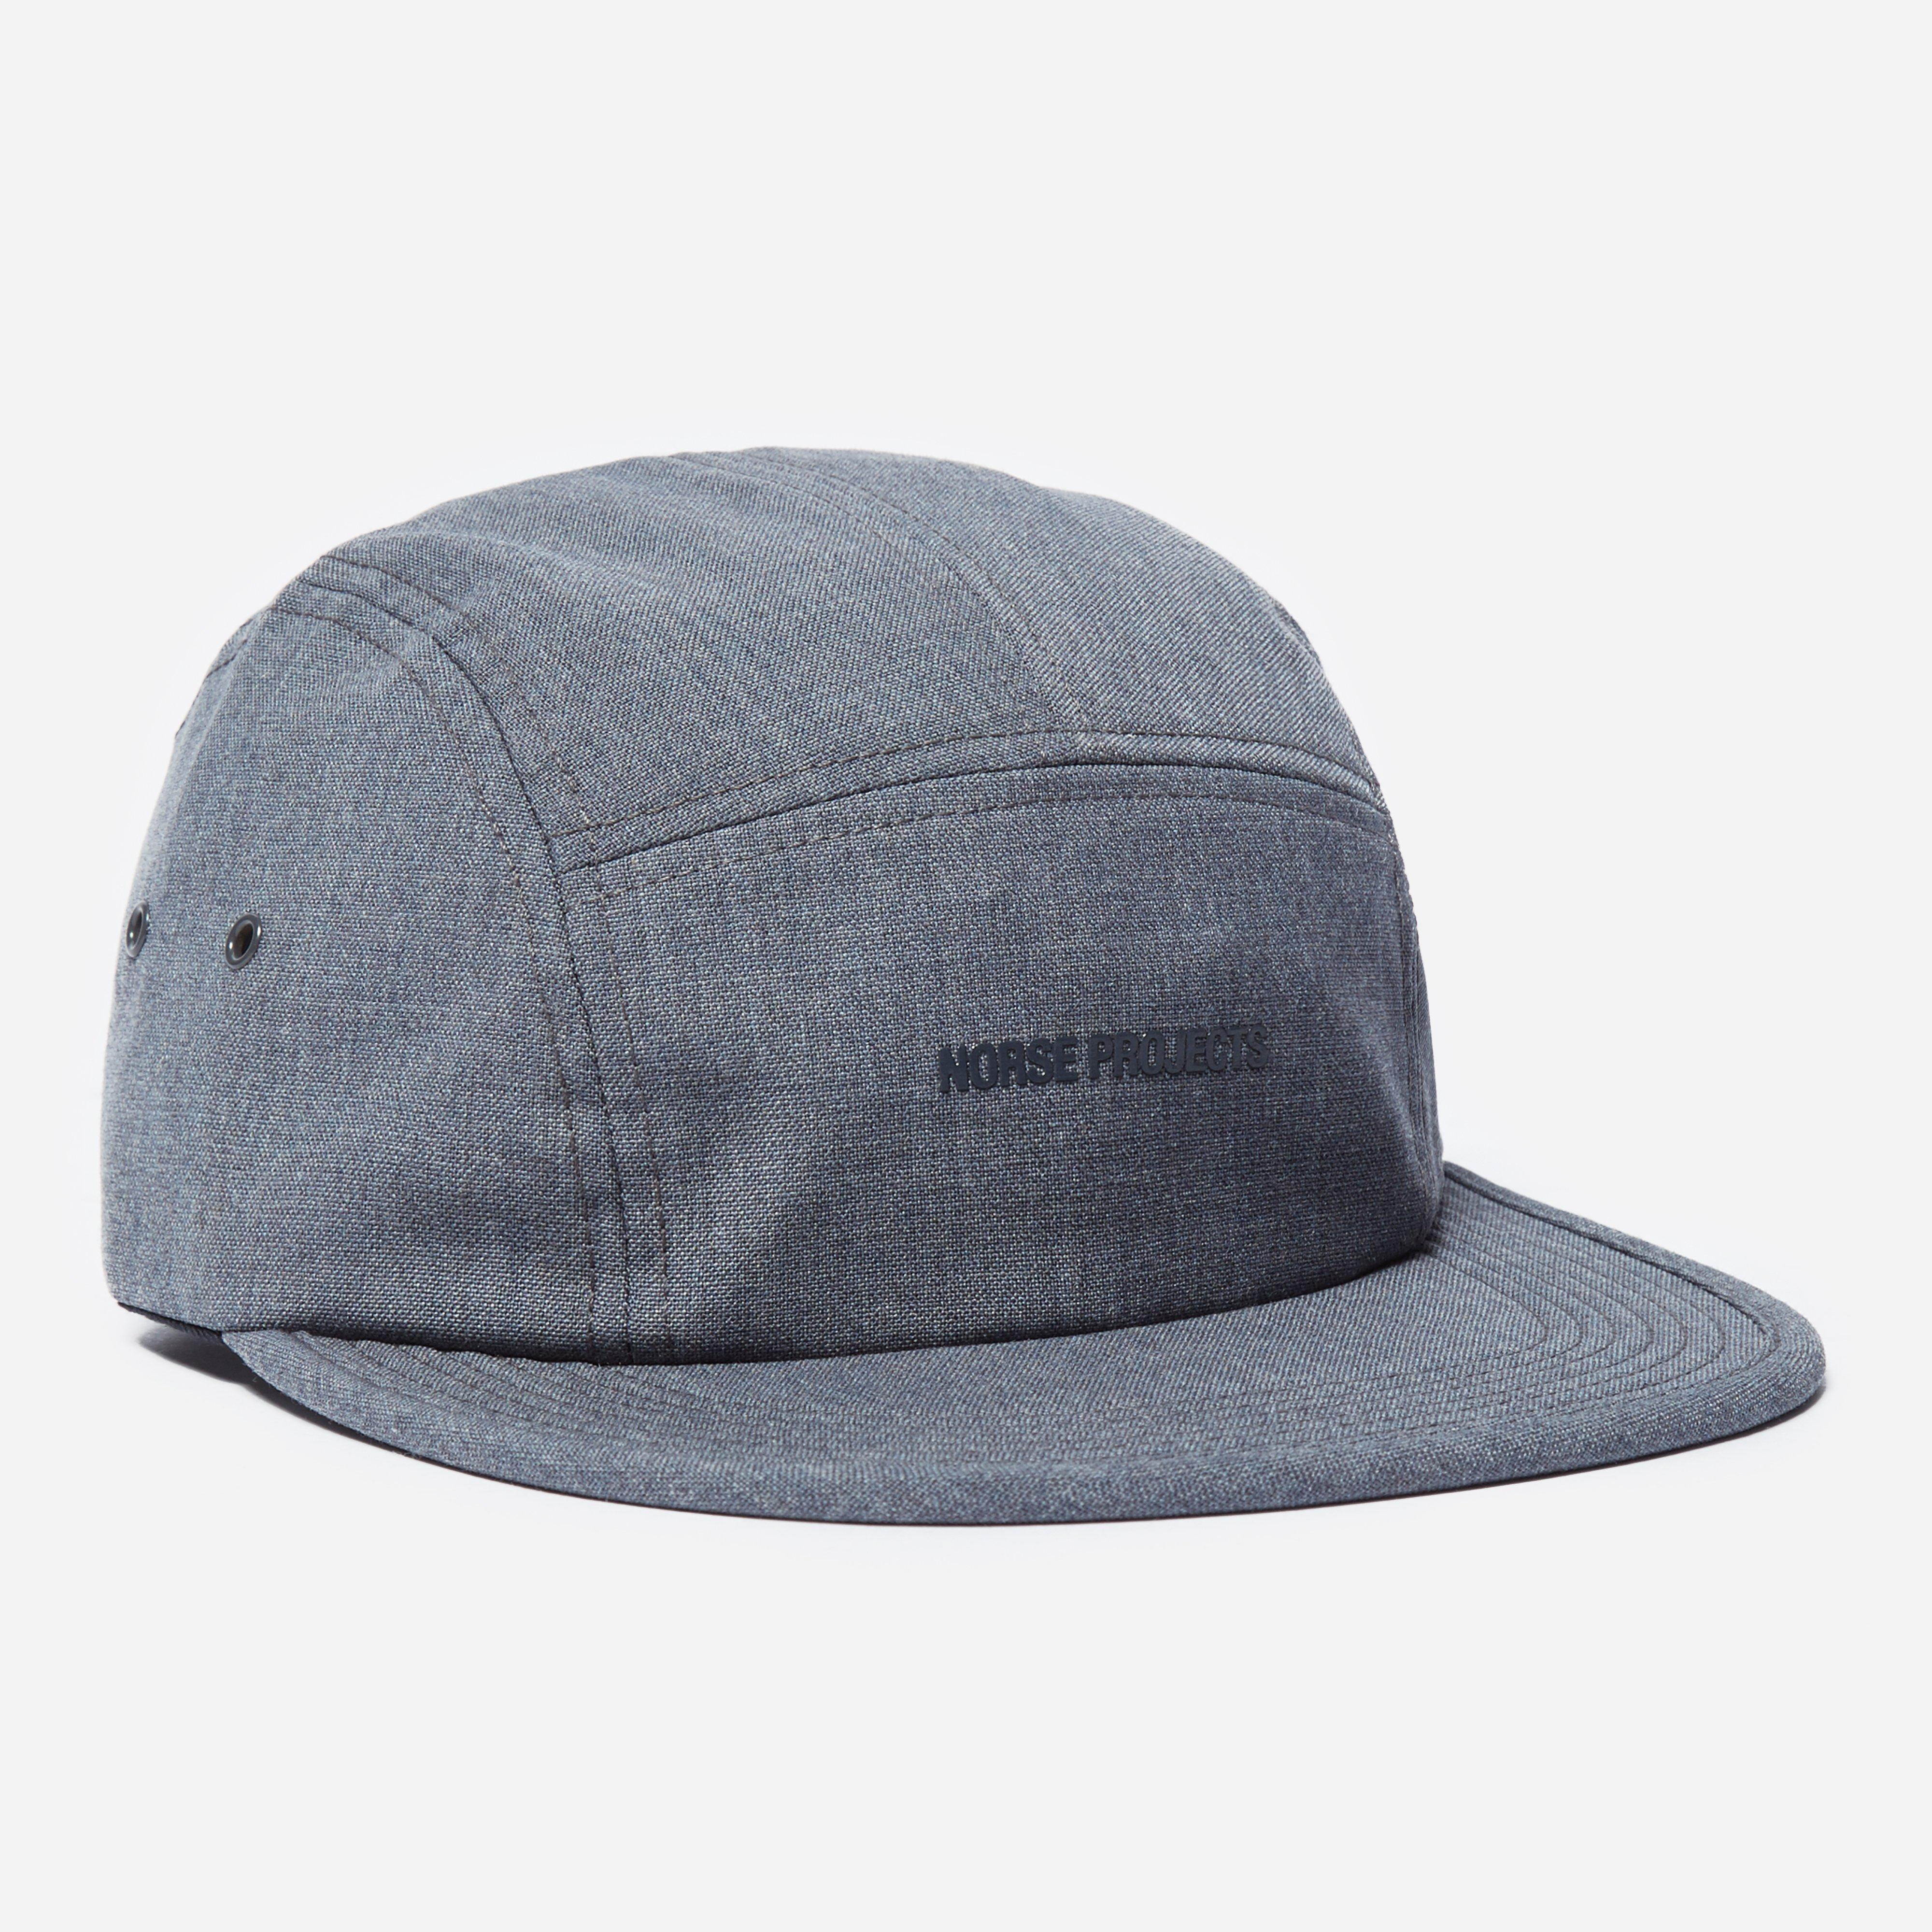 Norse Projects Light Wool Foldable 5 Panel